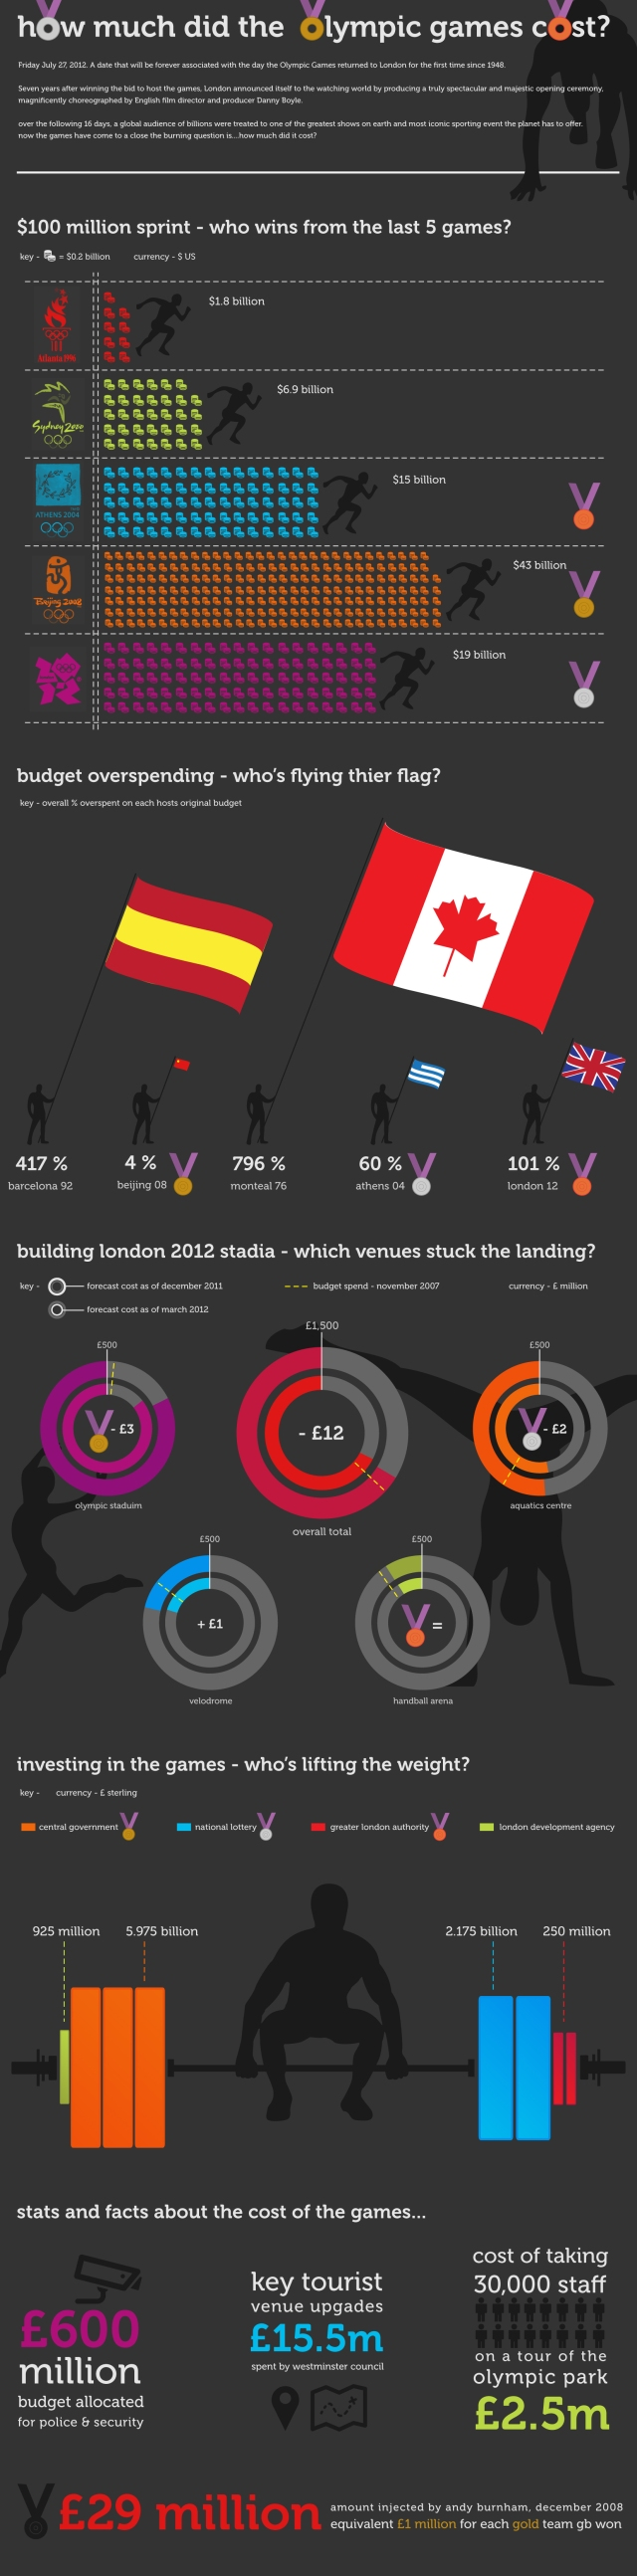 2012 Olympics Cost Infographic